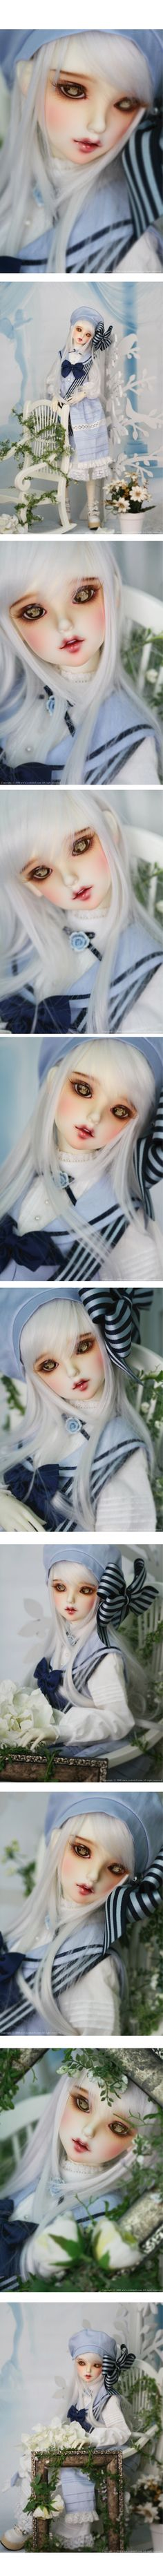 CROSS † AMBITION - BJD CROBI